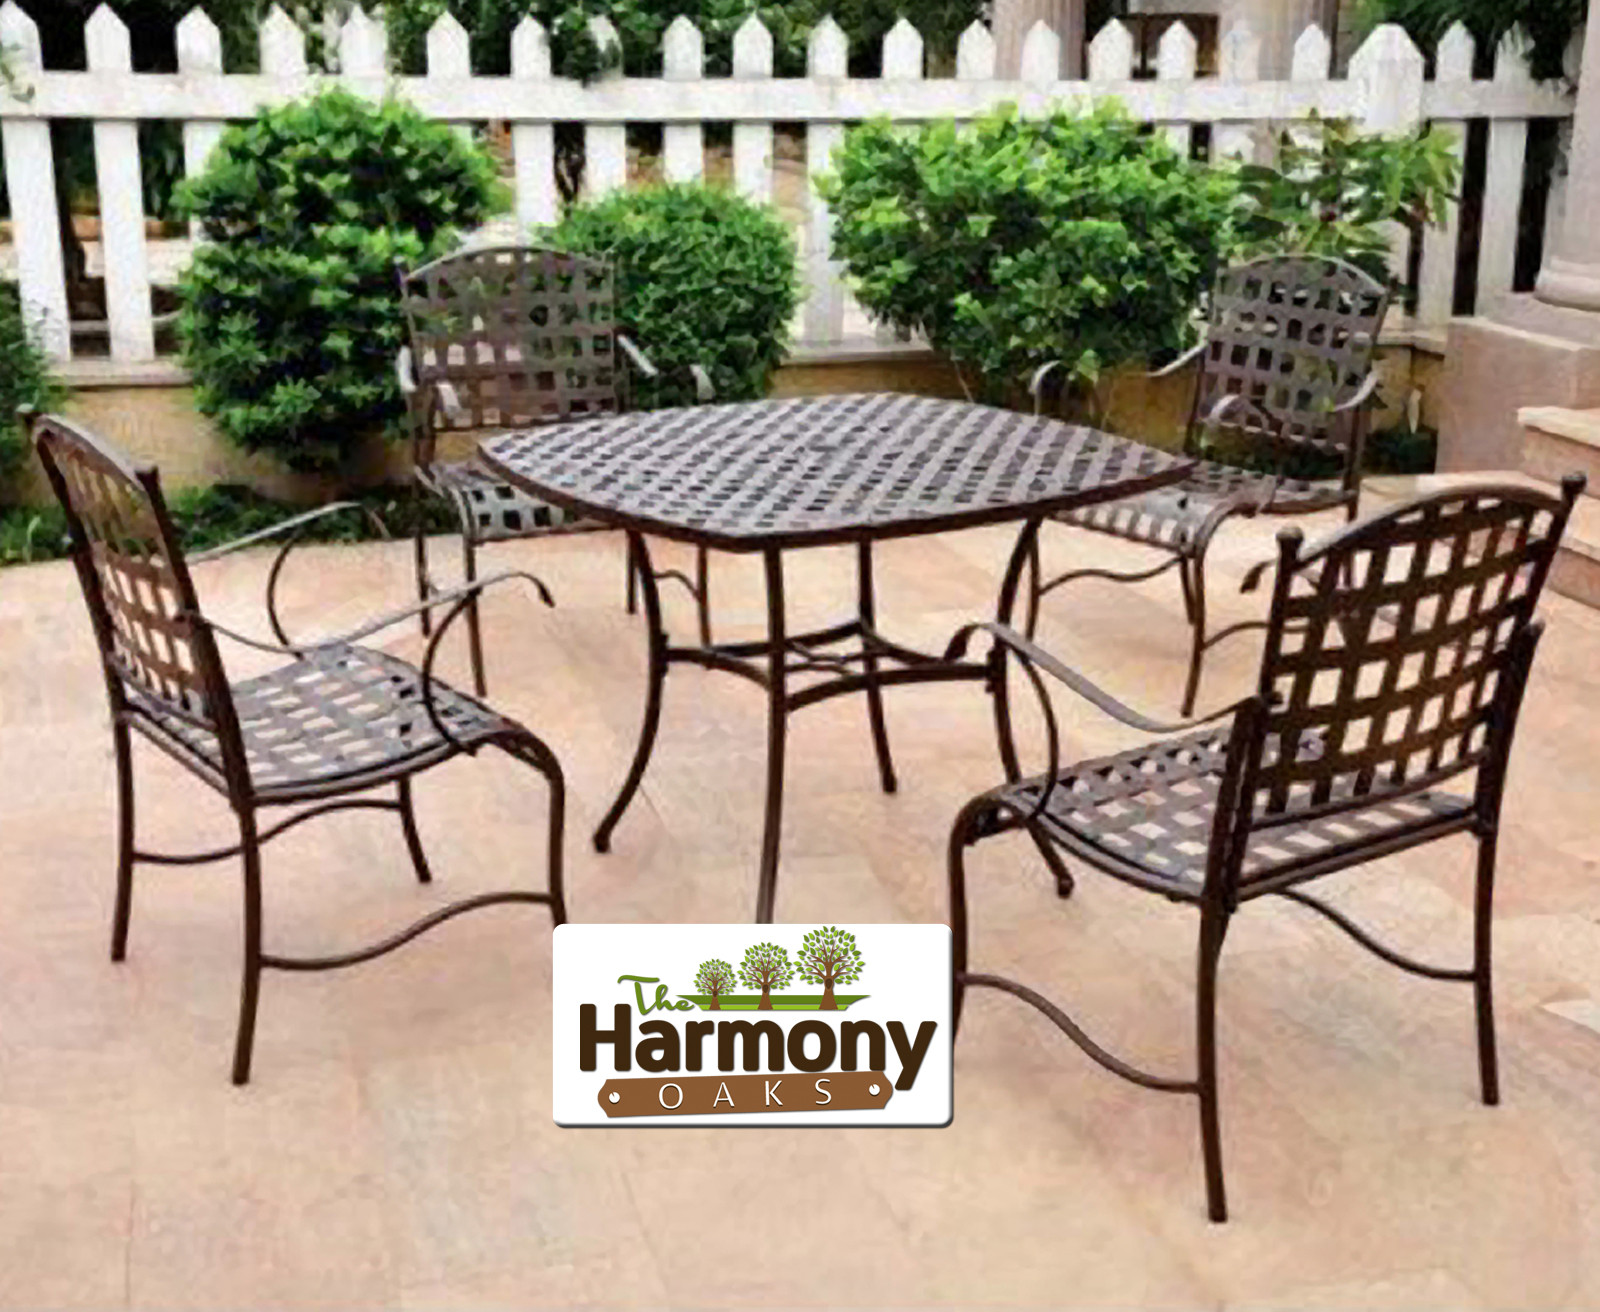 Best ideas about Patio Dining Sets On Sale . Save or Pin Patio Dining Set Clearance Good Furniture Outdoor Sets Now.